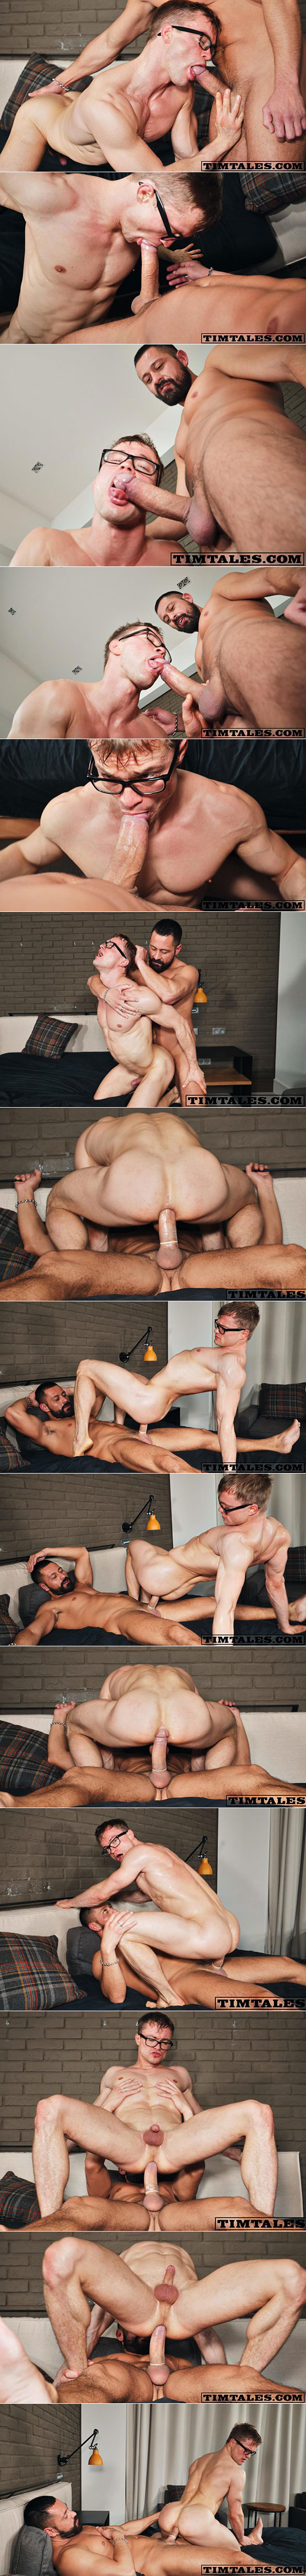 TimTales: Cristian Sam fucks Henrik Sommer's muscle ass hard and deep